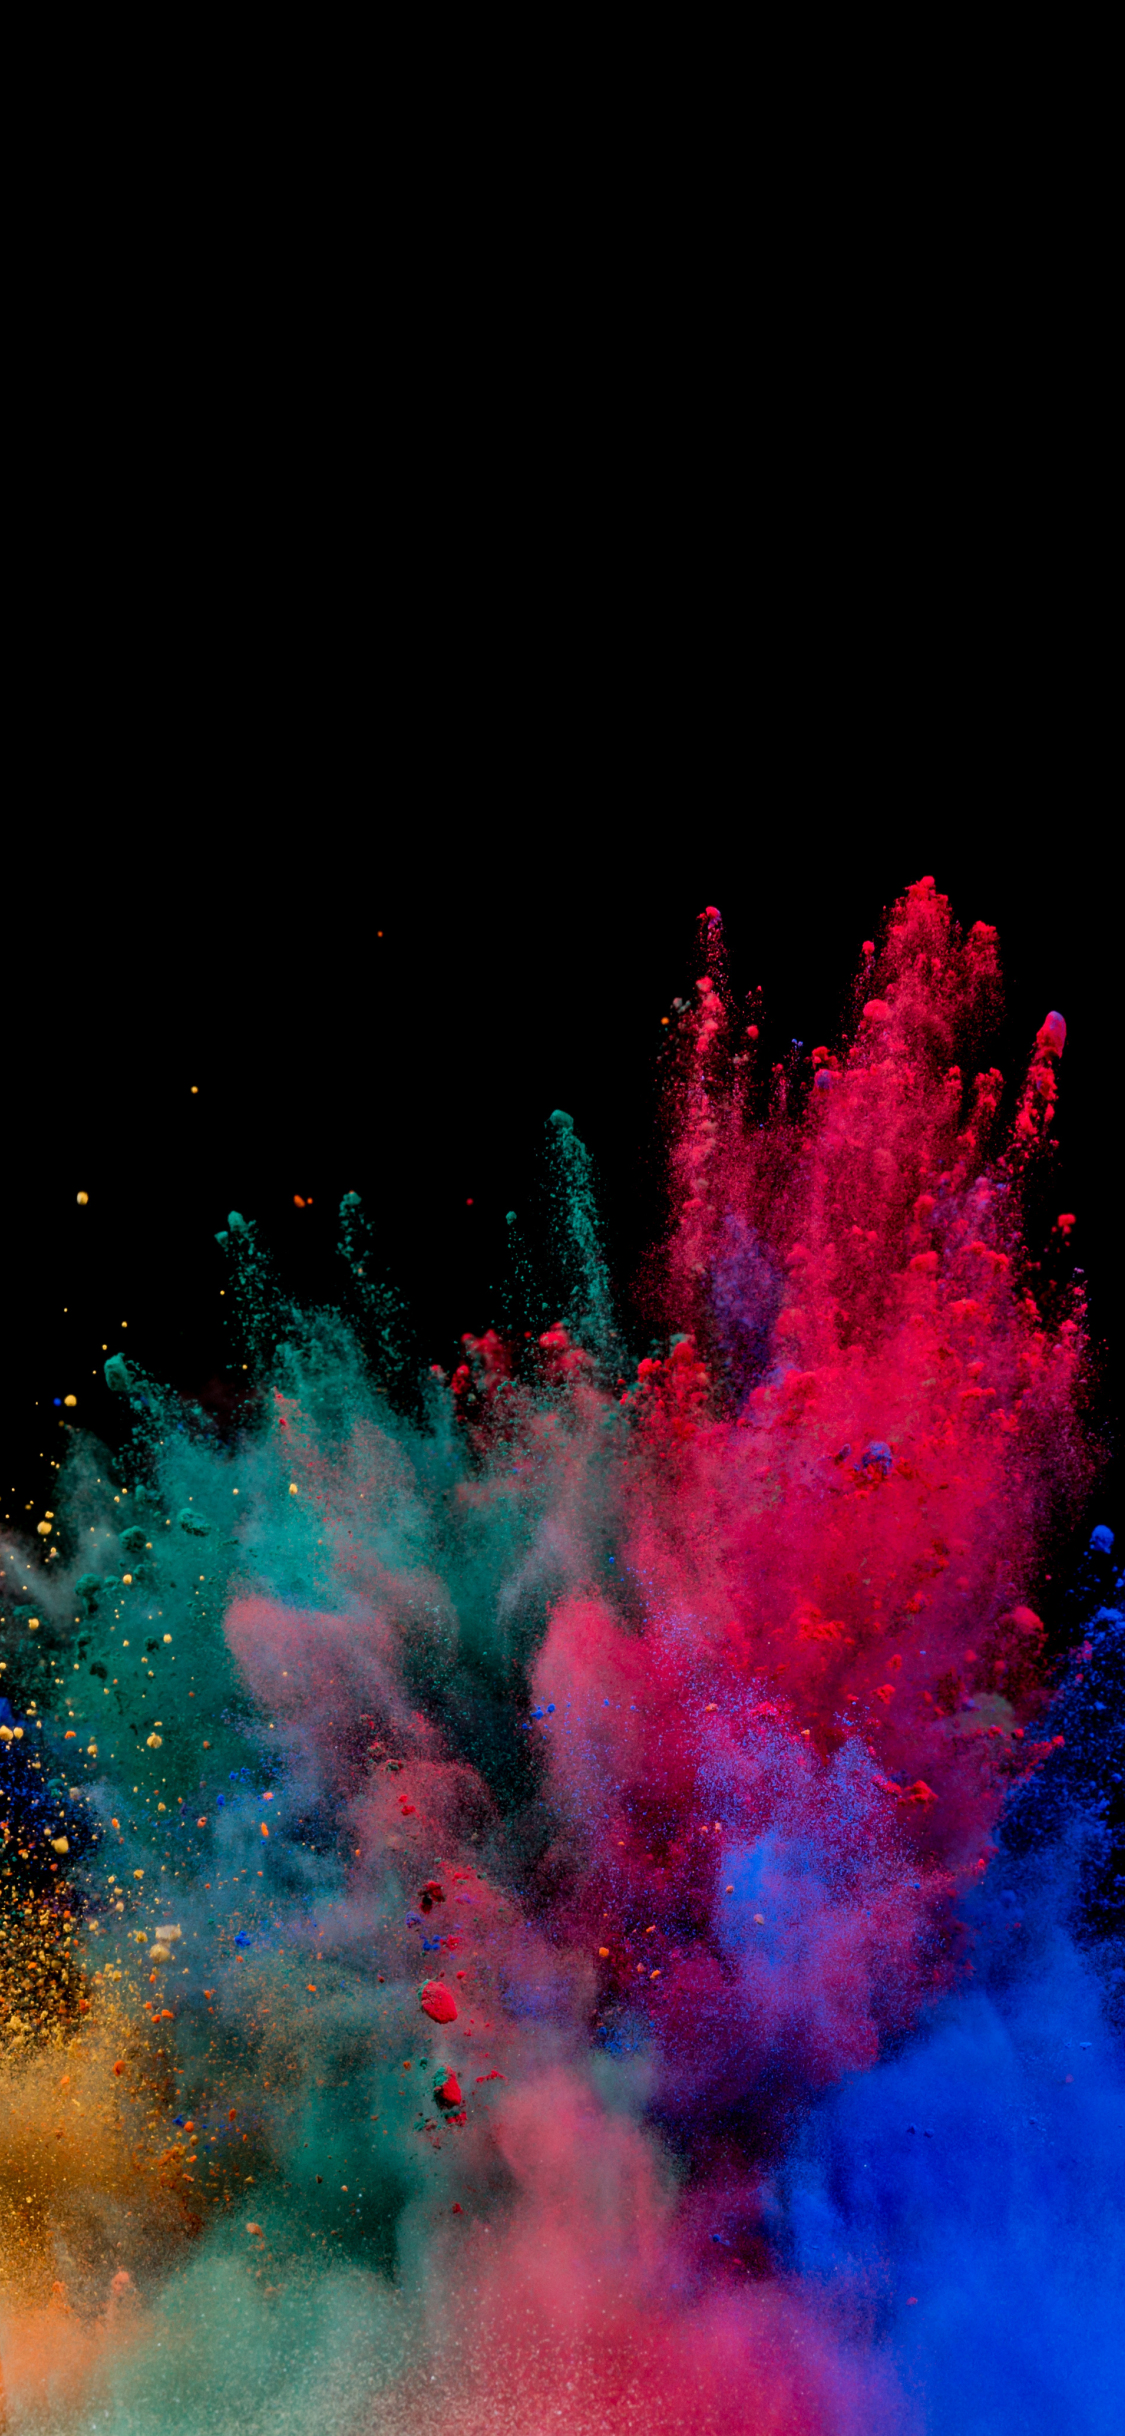 Samsung Galaxy S4 Wallpapers Hd Download Download 1125x2436 Wallpaper Colors Blast Explosion